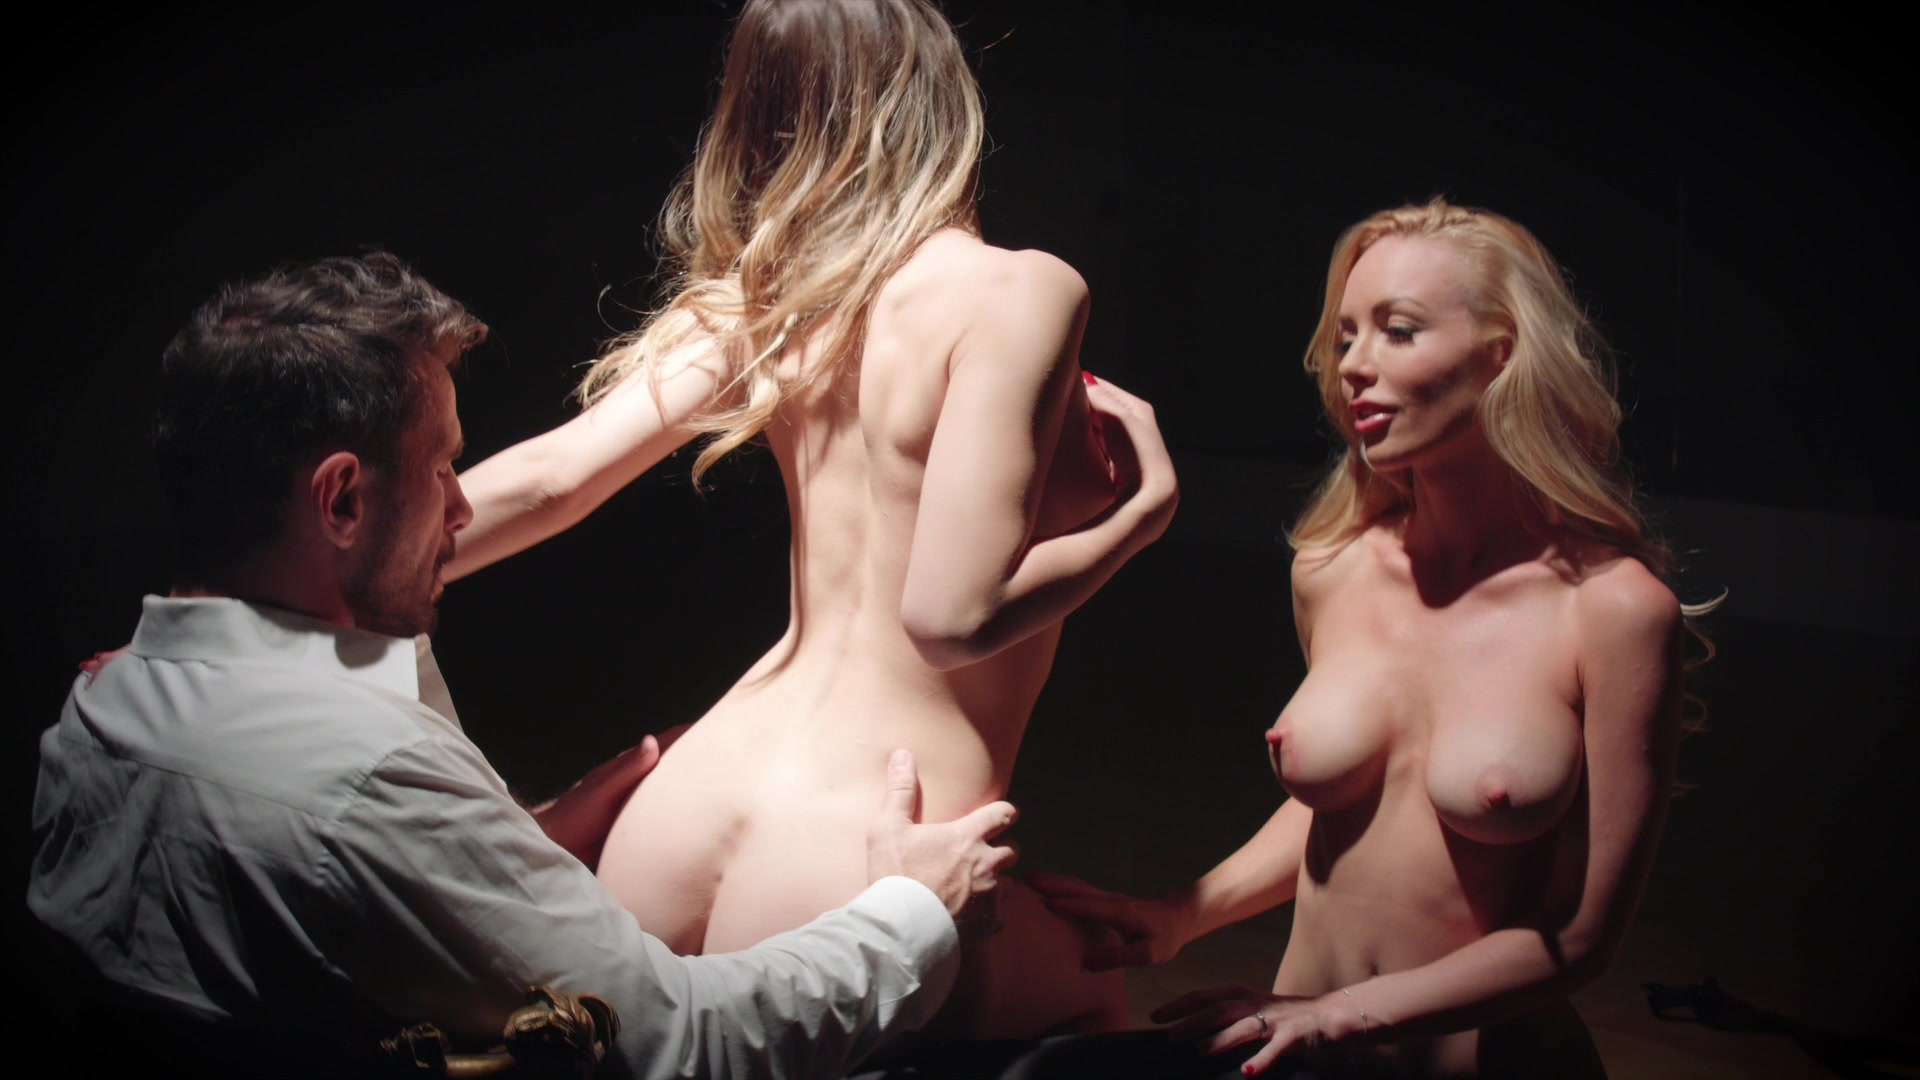 Scene with Kayden Kross and Jillian Janson - image 13 out of 20